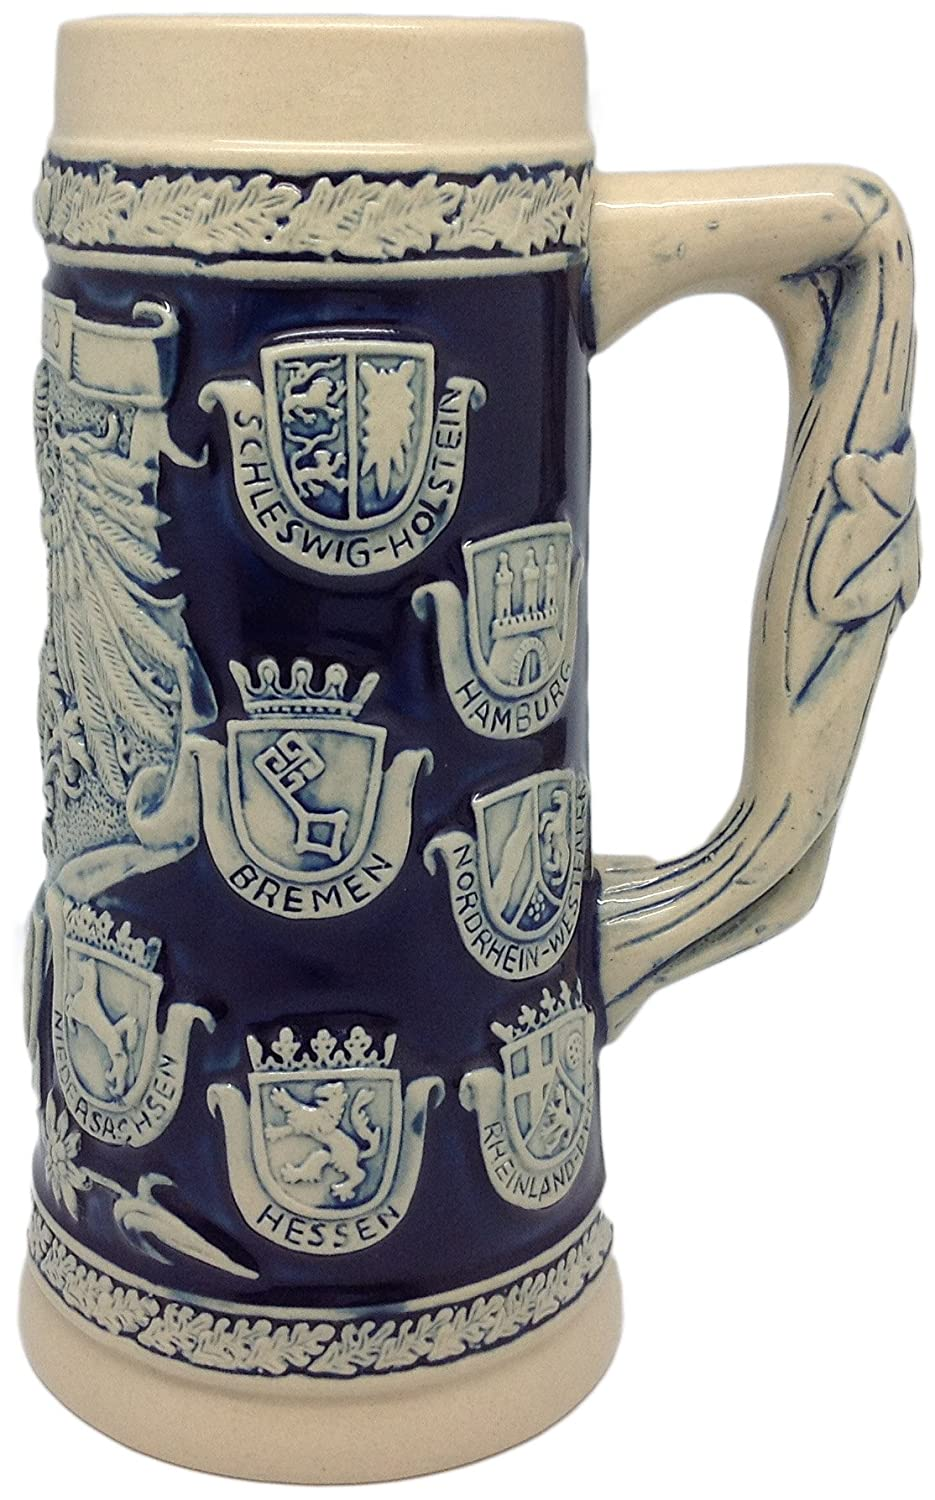 Germany Coats of Arms Collectible Beer Stein Essence of Europe Gifts E.H.G S4124